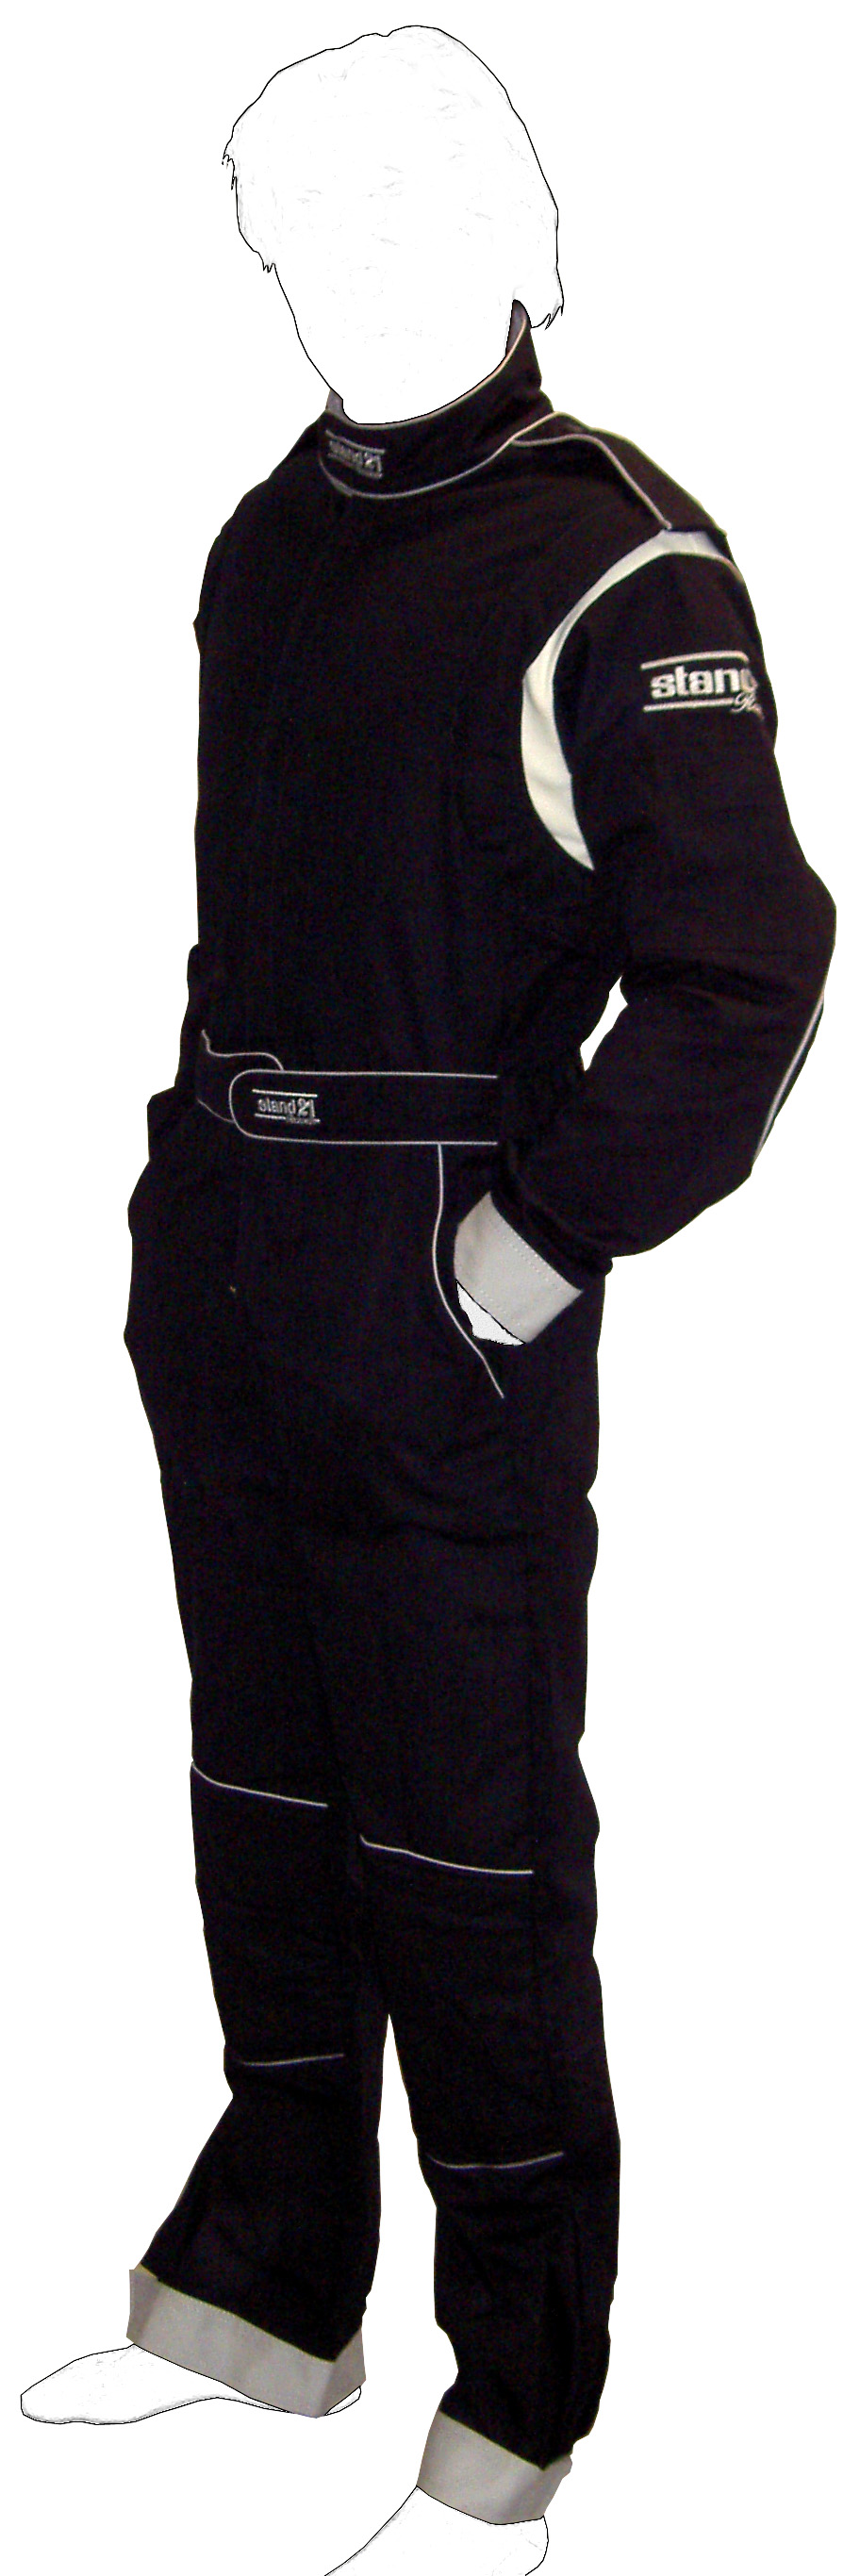 Stock black with grey piping K09 go-kart suit